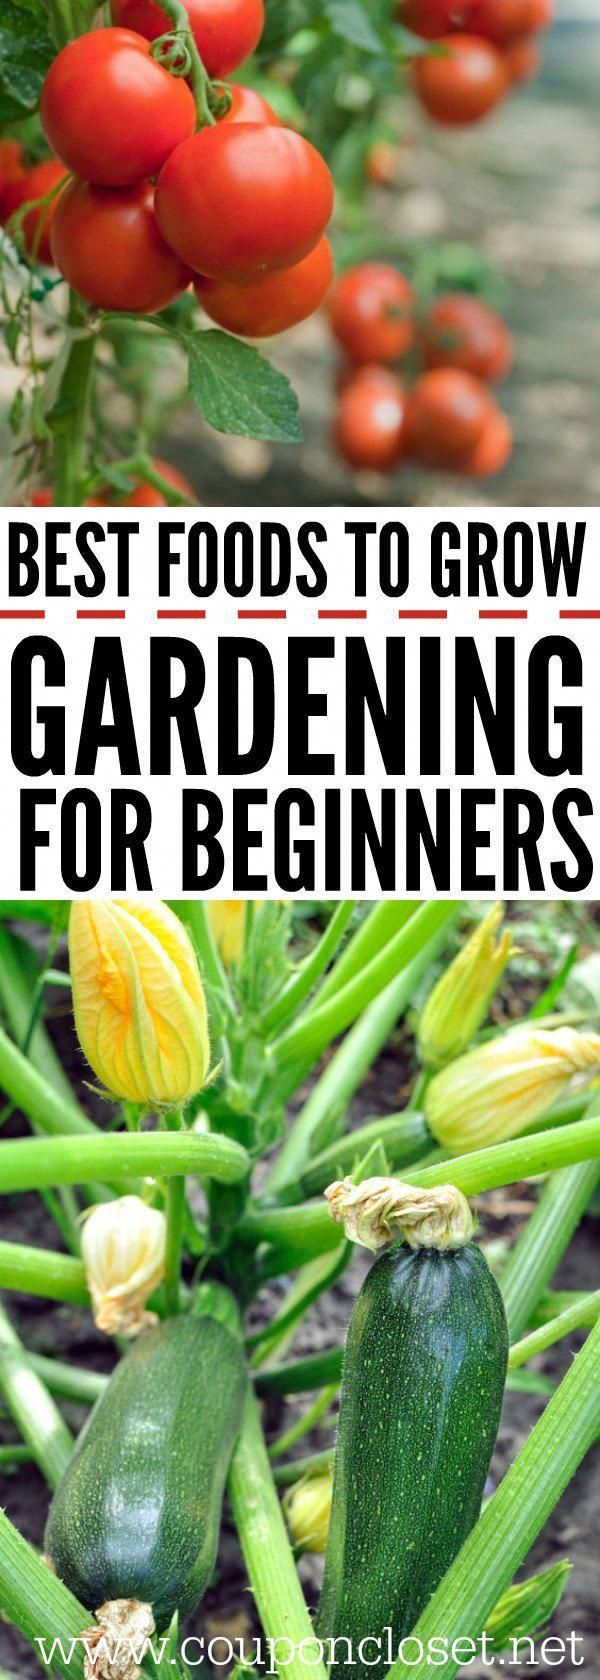 Gardening for Beginners -Vegetable Gardening for Beginners